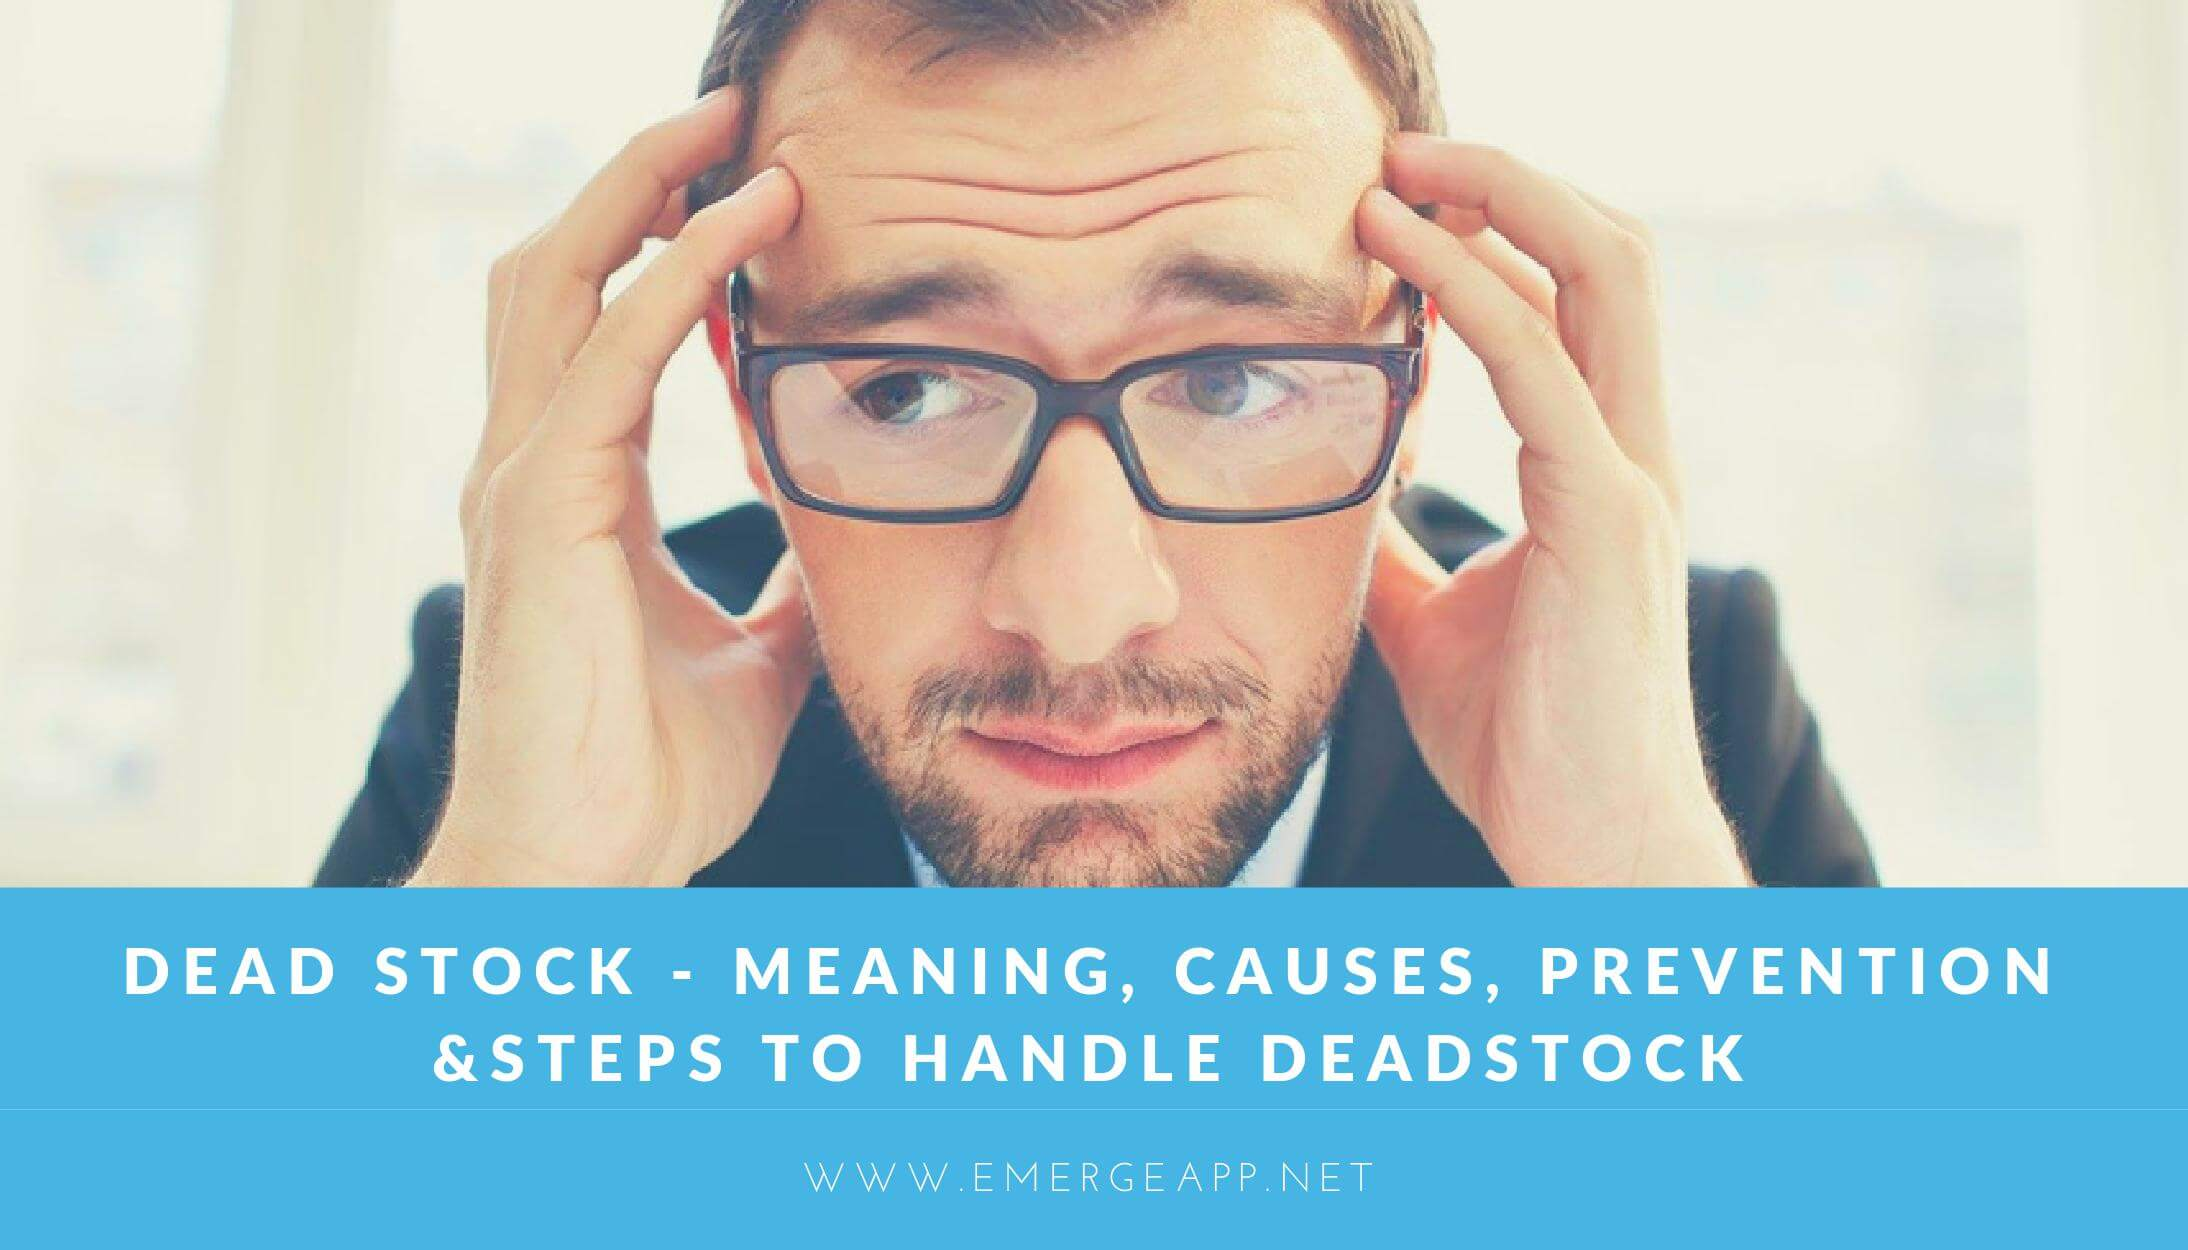 Dead stock - how to deal with deadstock